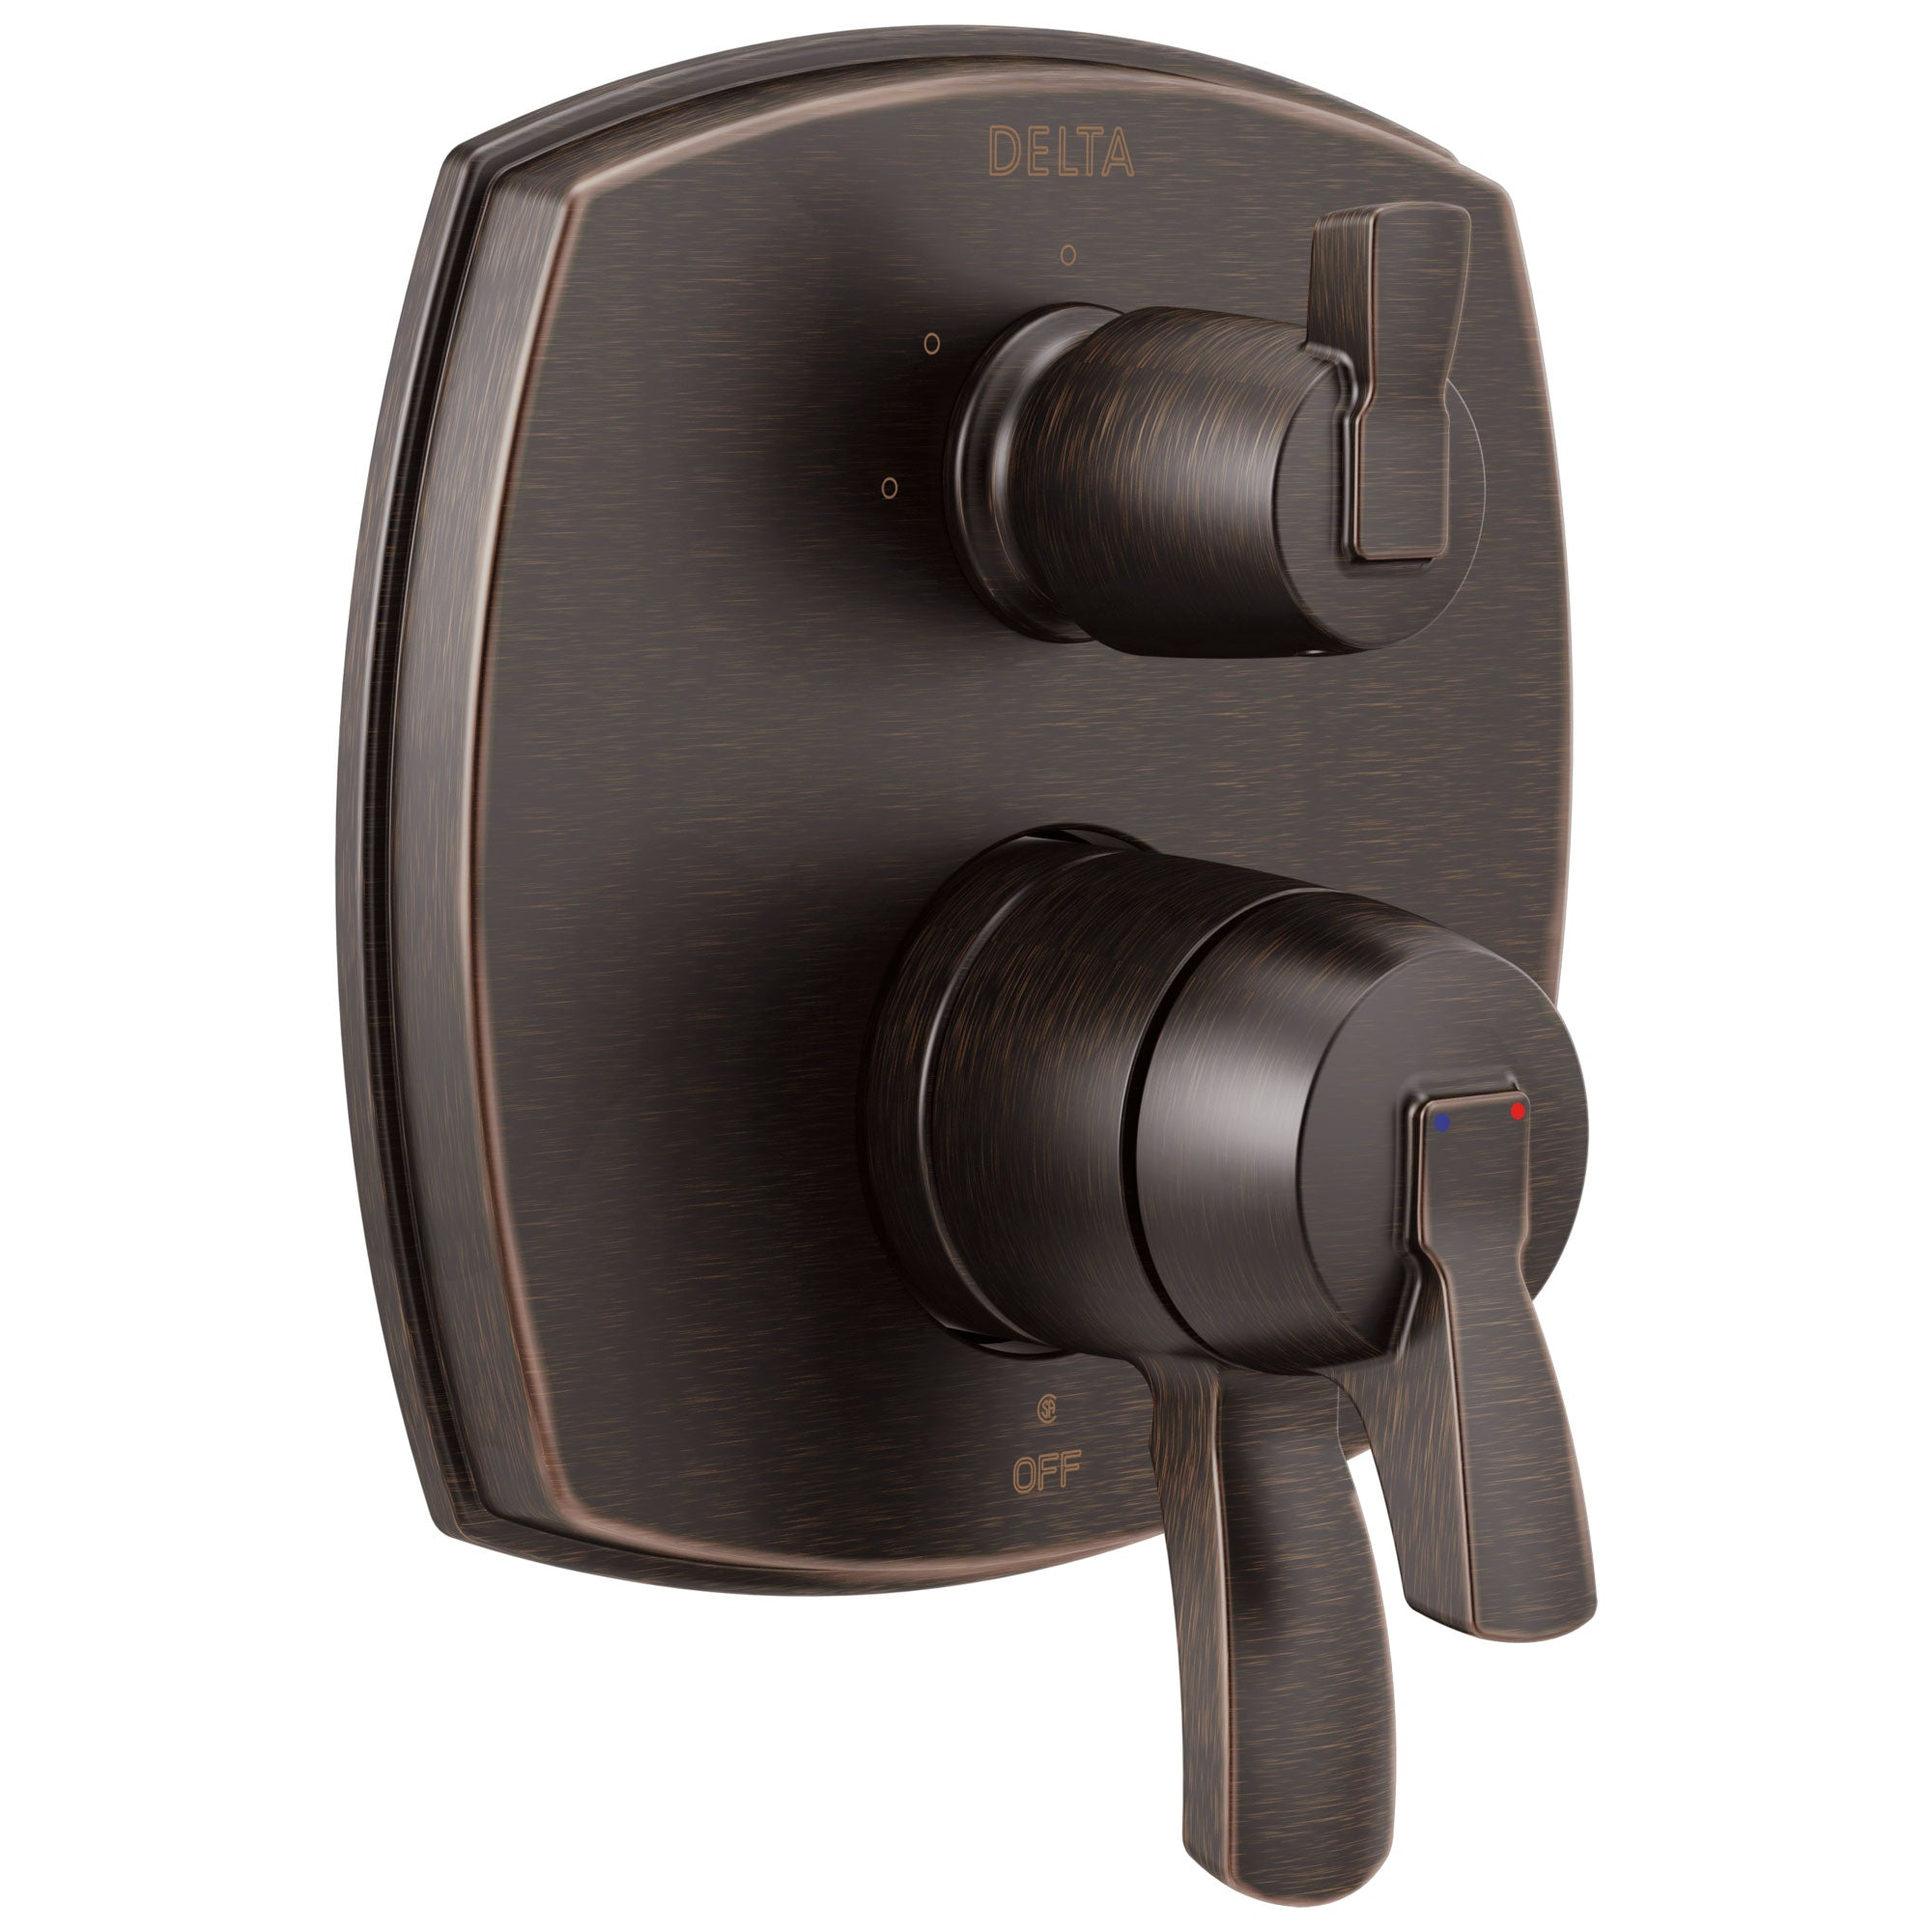 Delta Stryke Venetian Bronze Finish 17 Series Integrated 3-Function Lever Handle Diverter Shower System Control Includes Valve and Handles D3142V